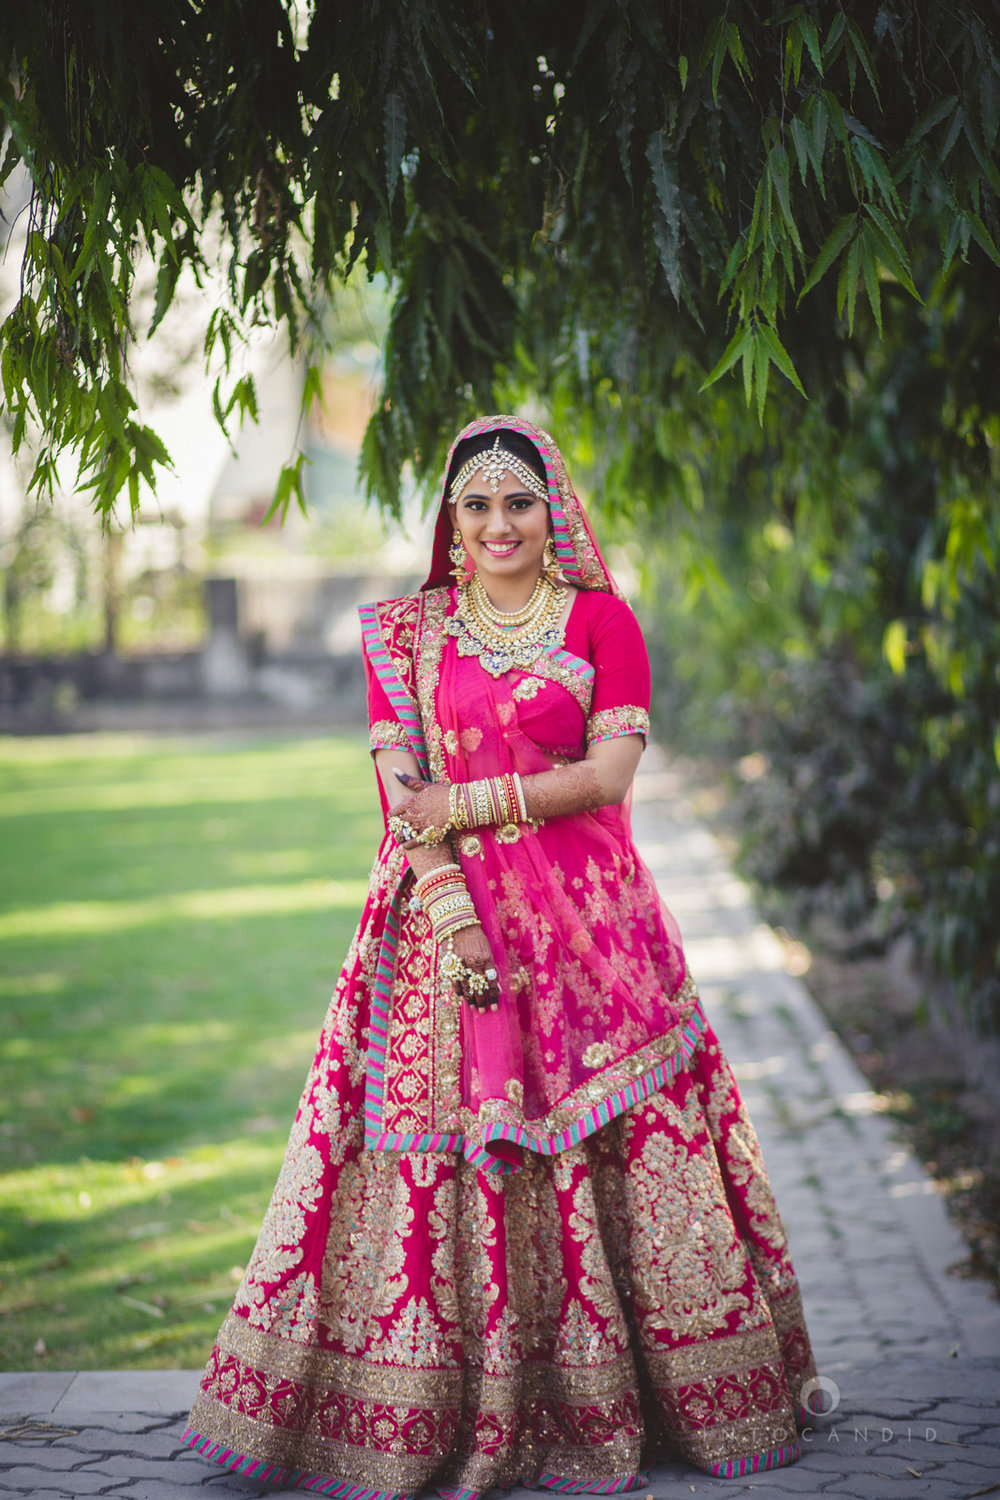 mumbai-gujarati-wedding-photographer-intocandid-photography-tg-017.jpg